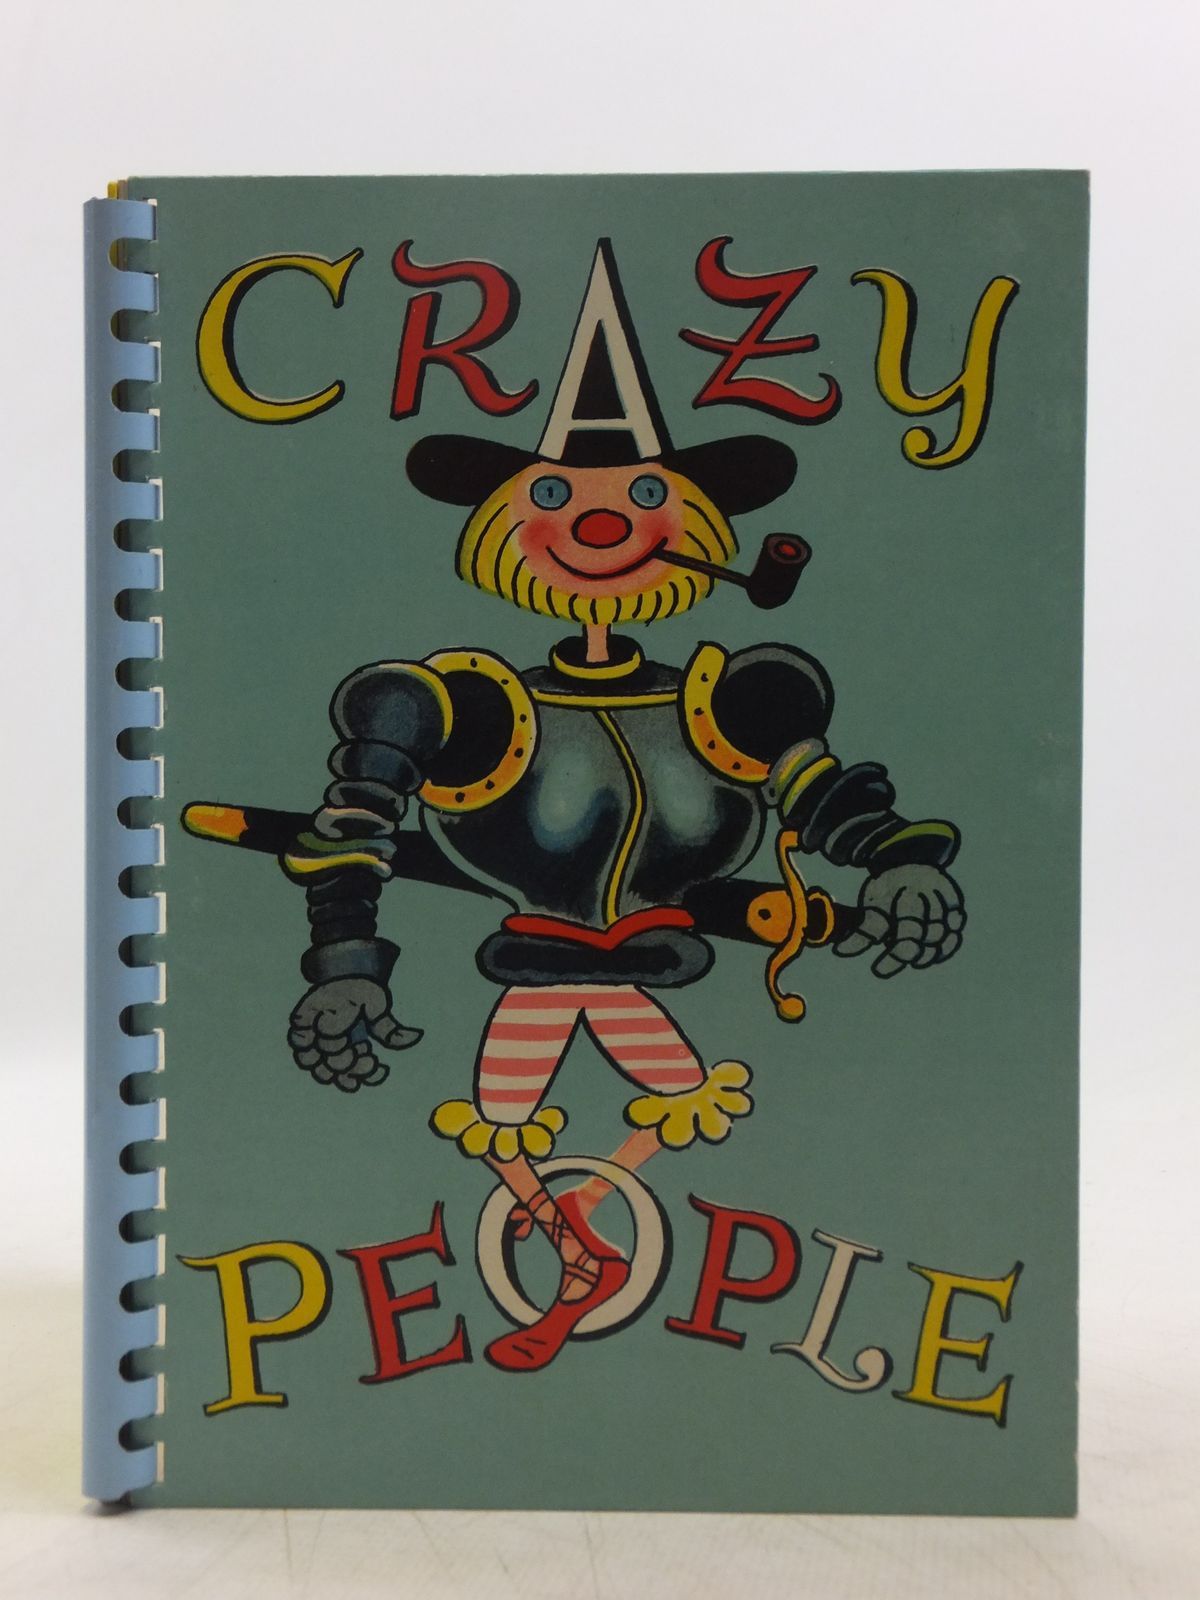 Photo of 8192 CRAZY PEOPLE illustrated by Trier, Walter published by Atrium Press Ltd. (STOCK CODE: 2118929)  for sale by Stella & Rose's Books